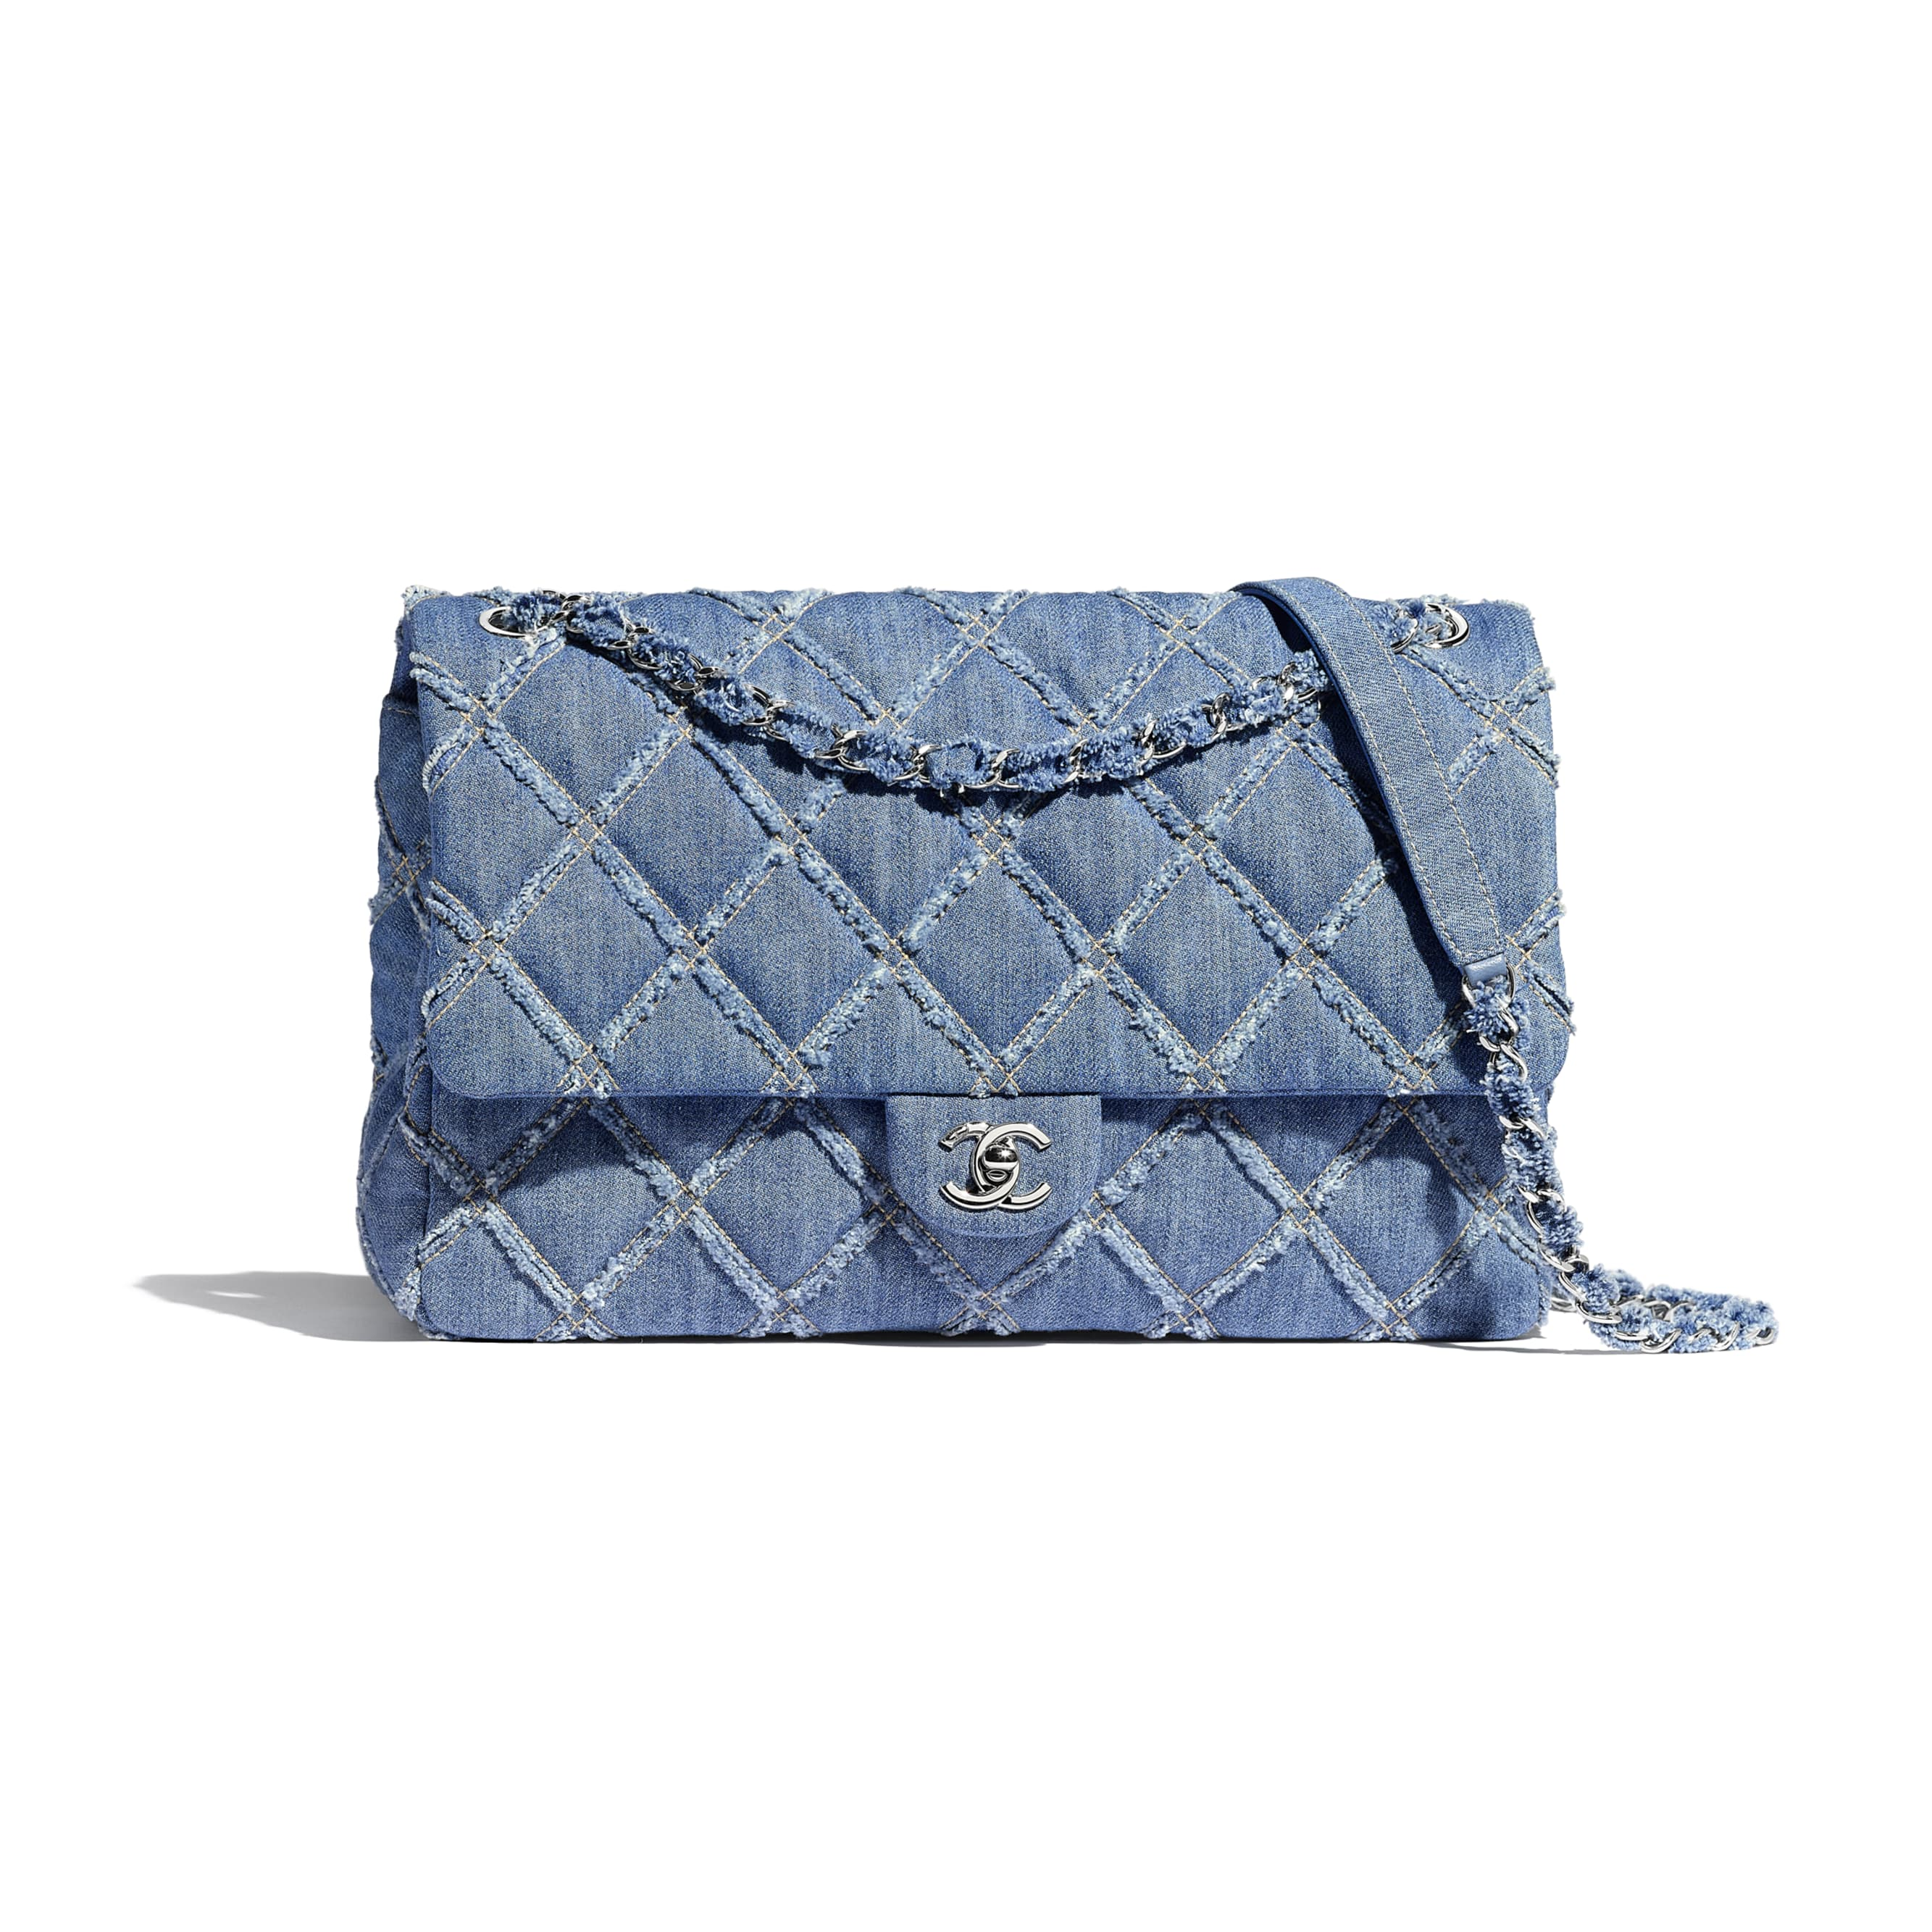 Large Flap Bag - Blue - Denim & Silver-Tone Metal - Default view - see standard sized version